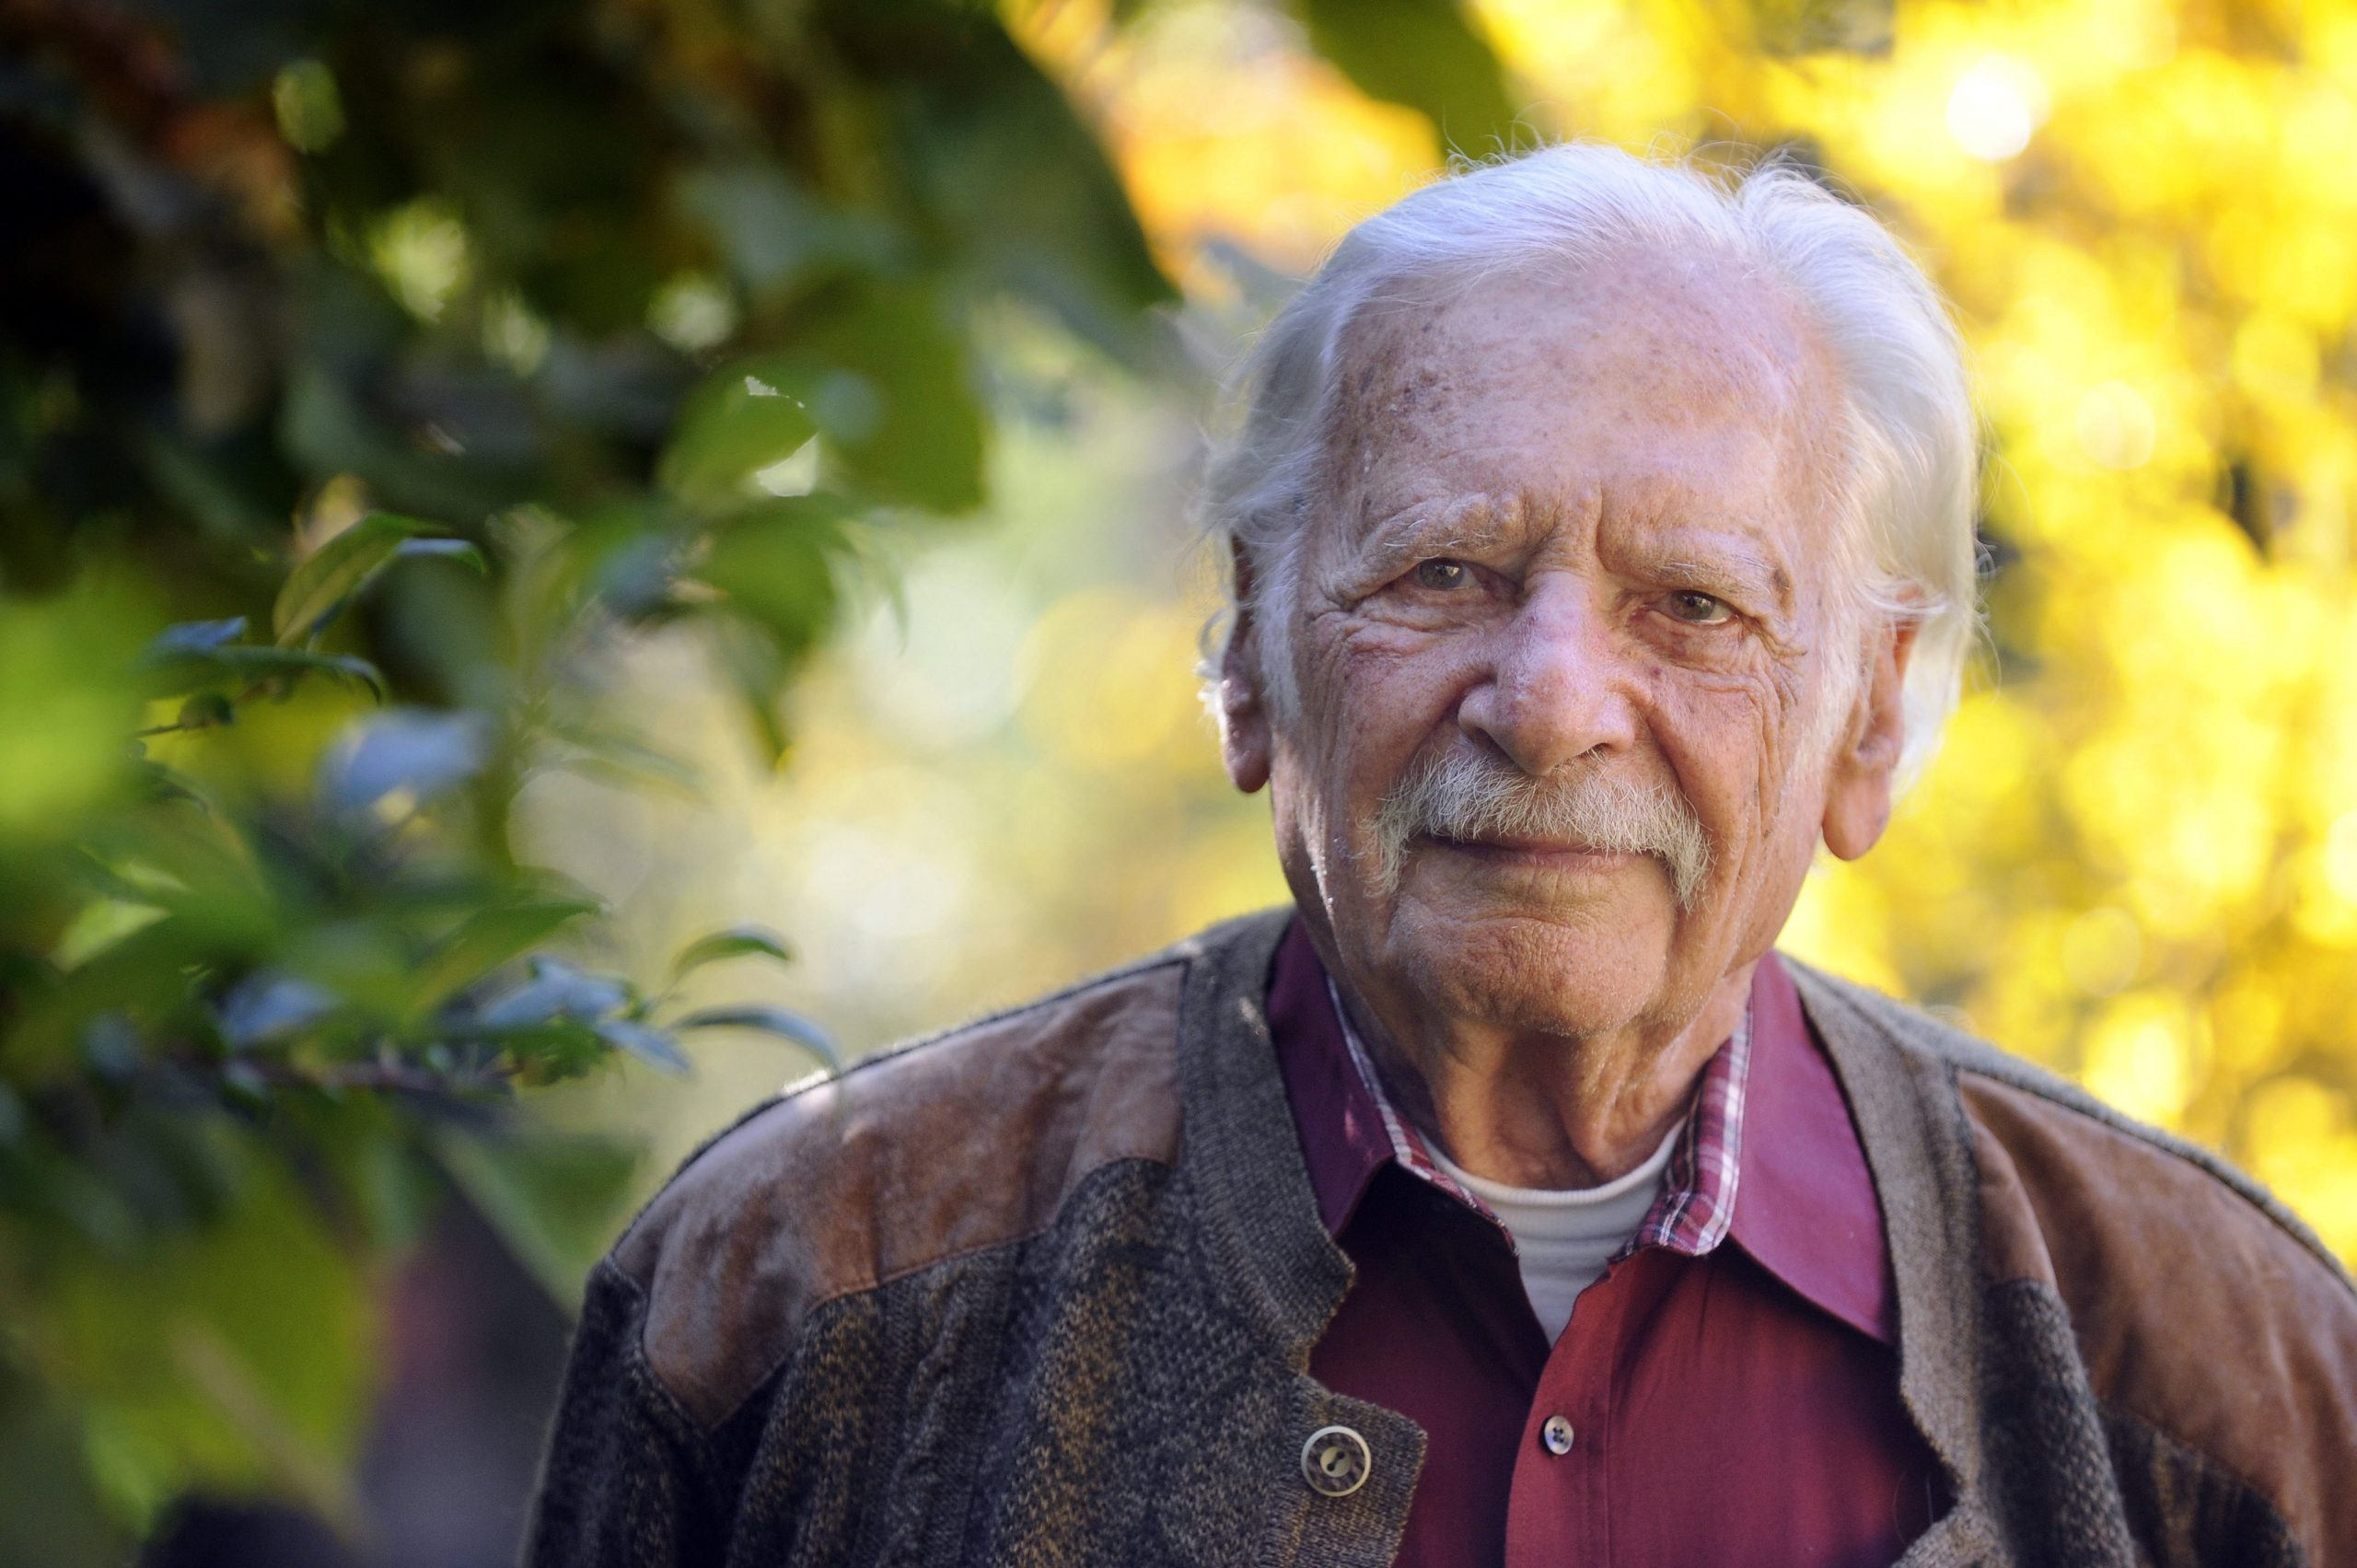 'Farmer Bálint,' the Famous 'Gardener of the Country' Dies at Age 101 post's picture